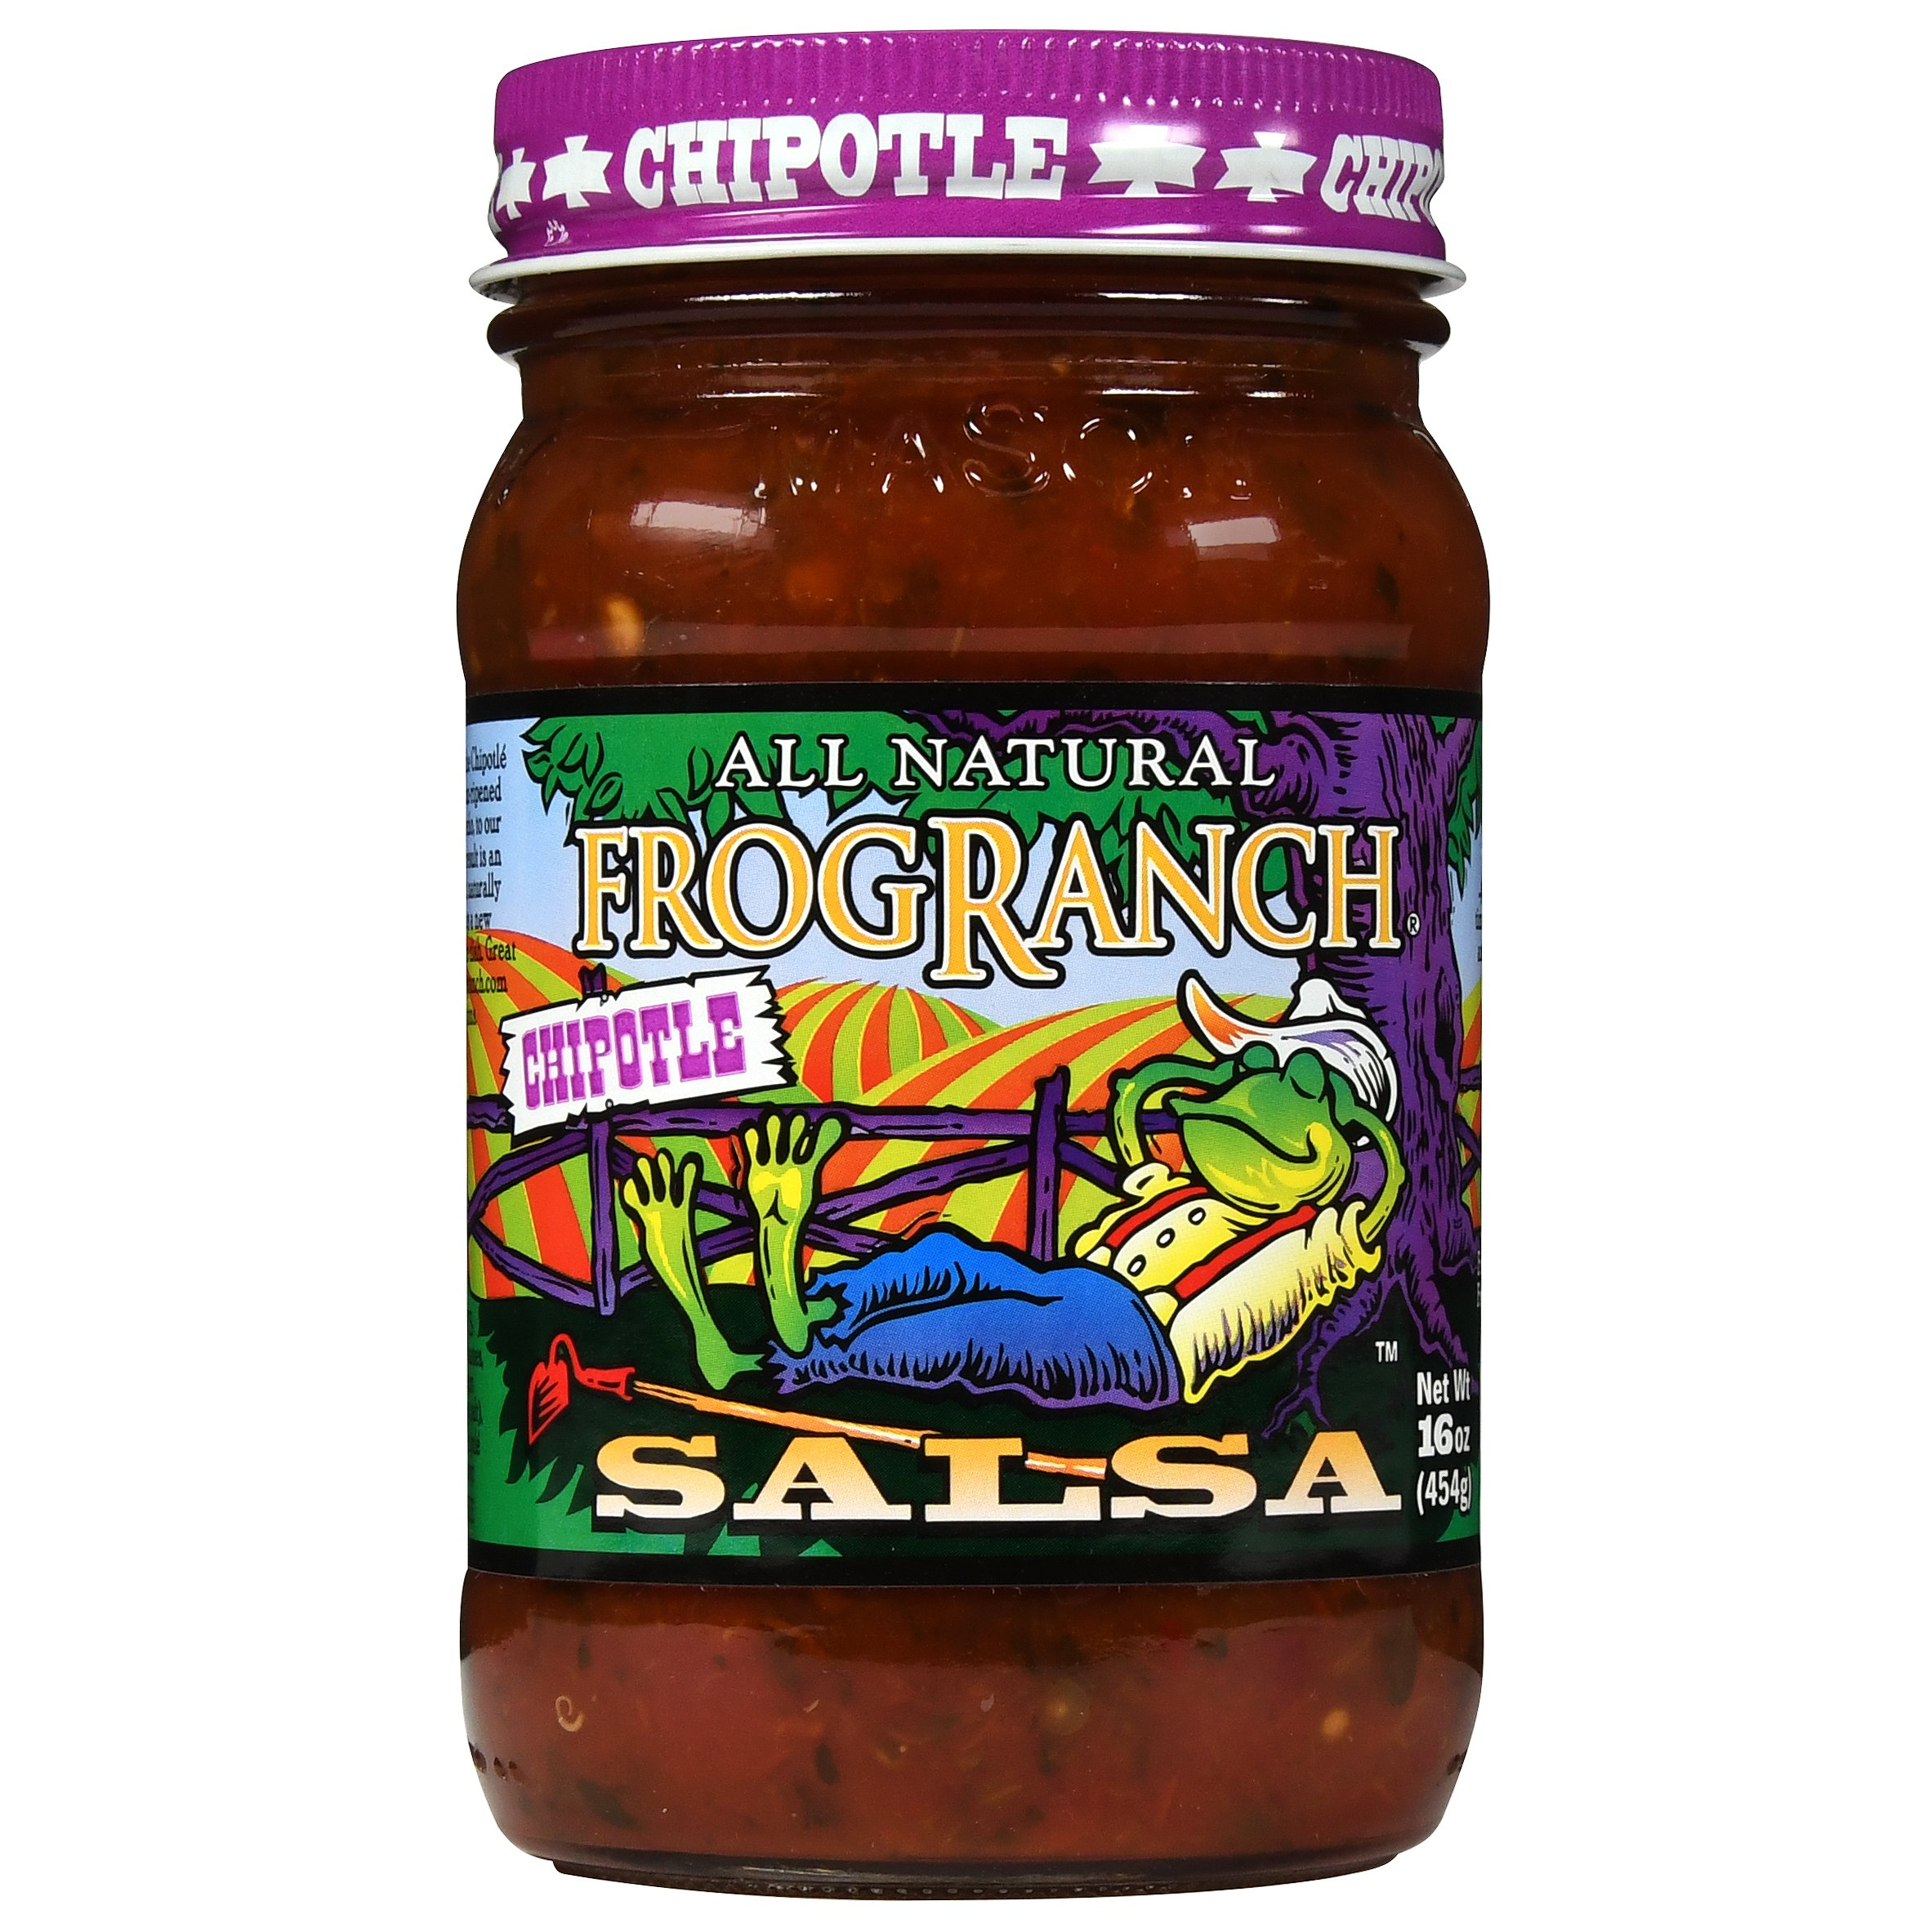 Frog Ranch Chipotle All Natural Salsa 16 oz. (Pack of 3) by Frog Ranch